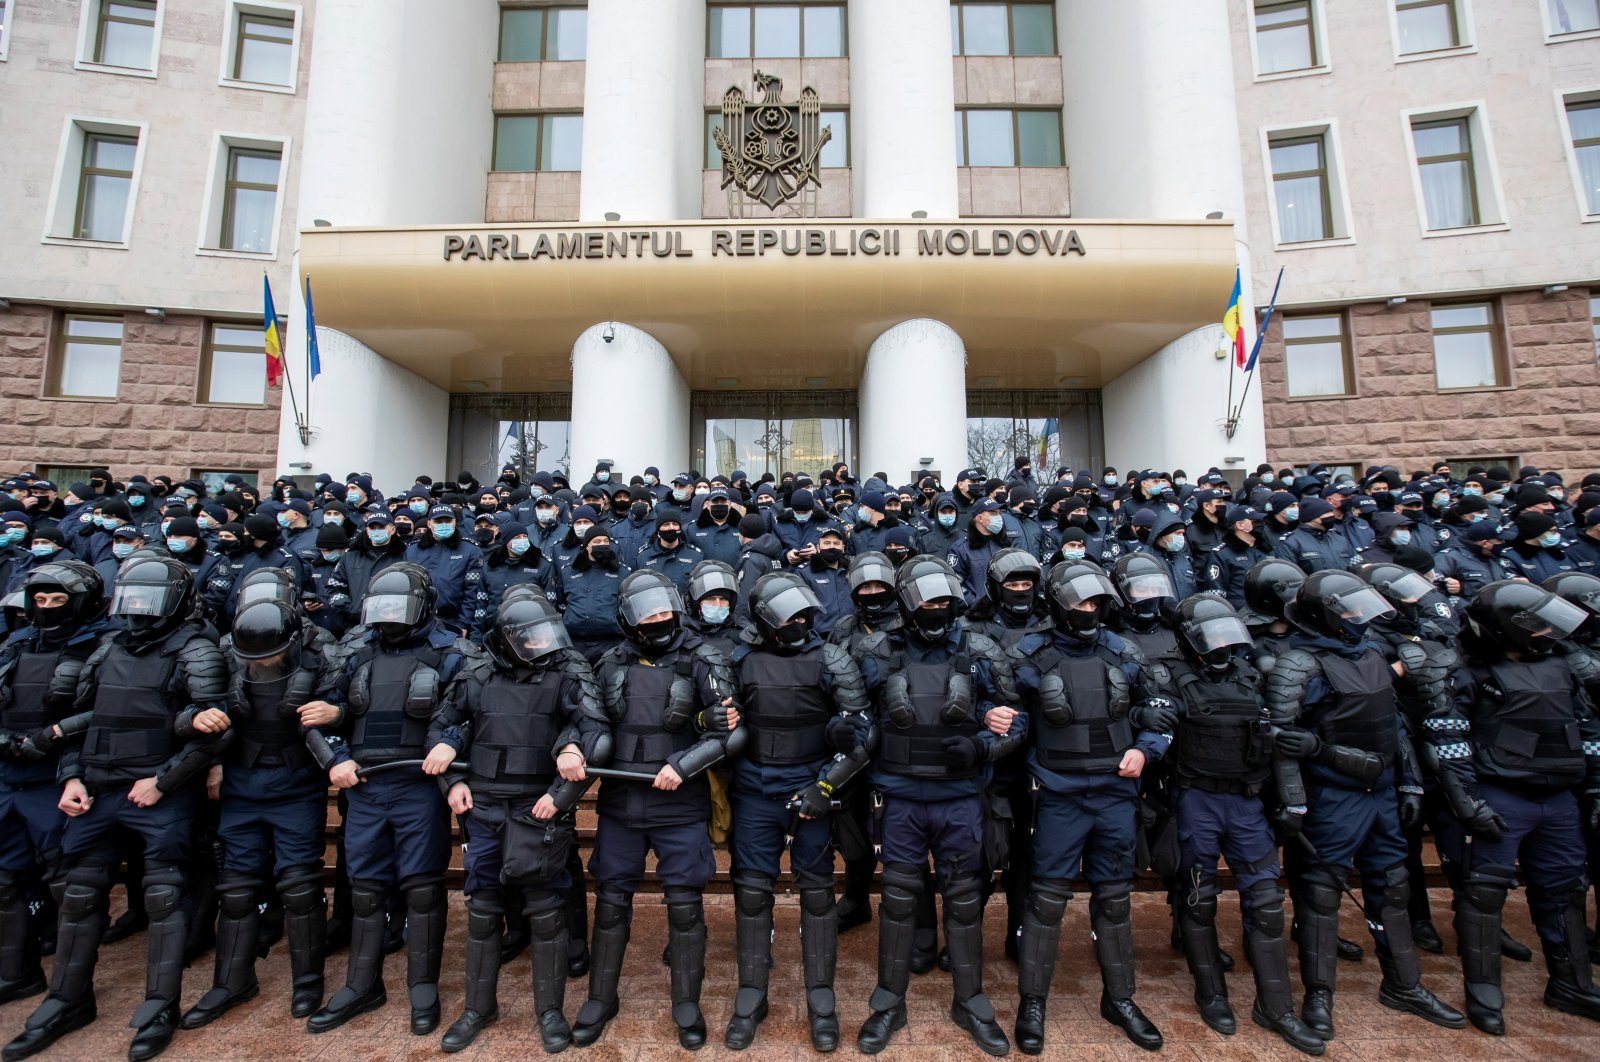 Moldovan law enforcement officers stand guard during a rally of farmers and agrarians, who demand governmental support and financial aid near the parliament building in Chisinau, Moldova, Dec. 16, 2020. (Reuters Photo)